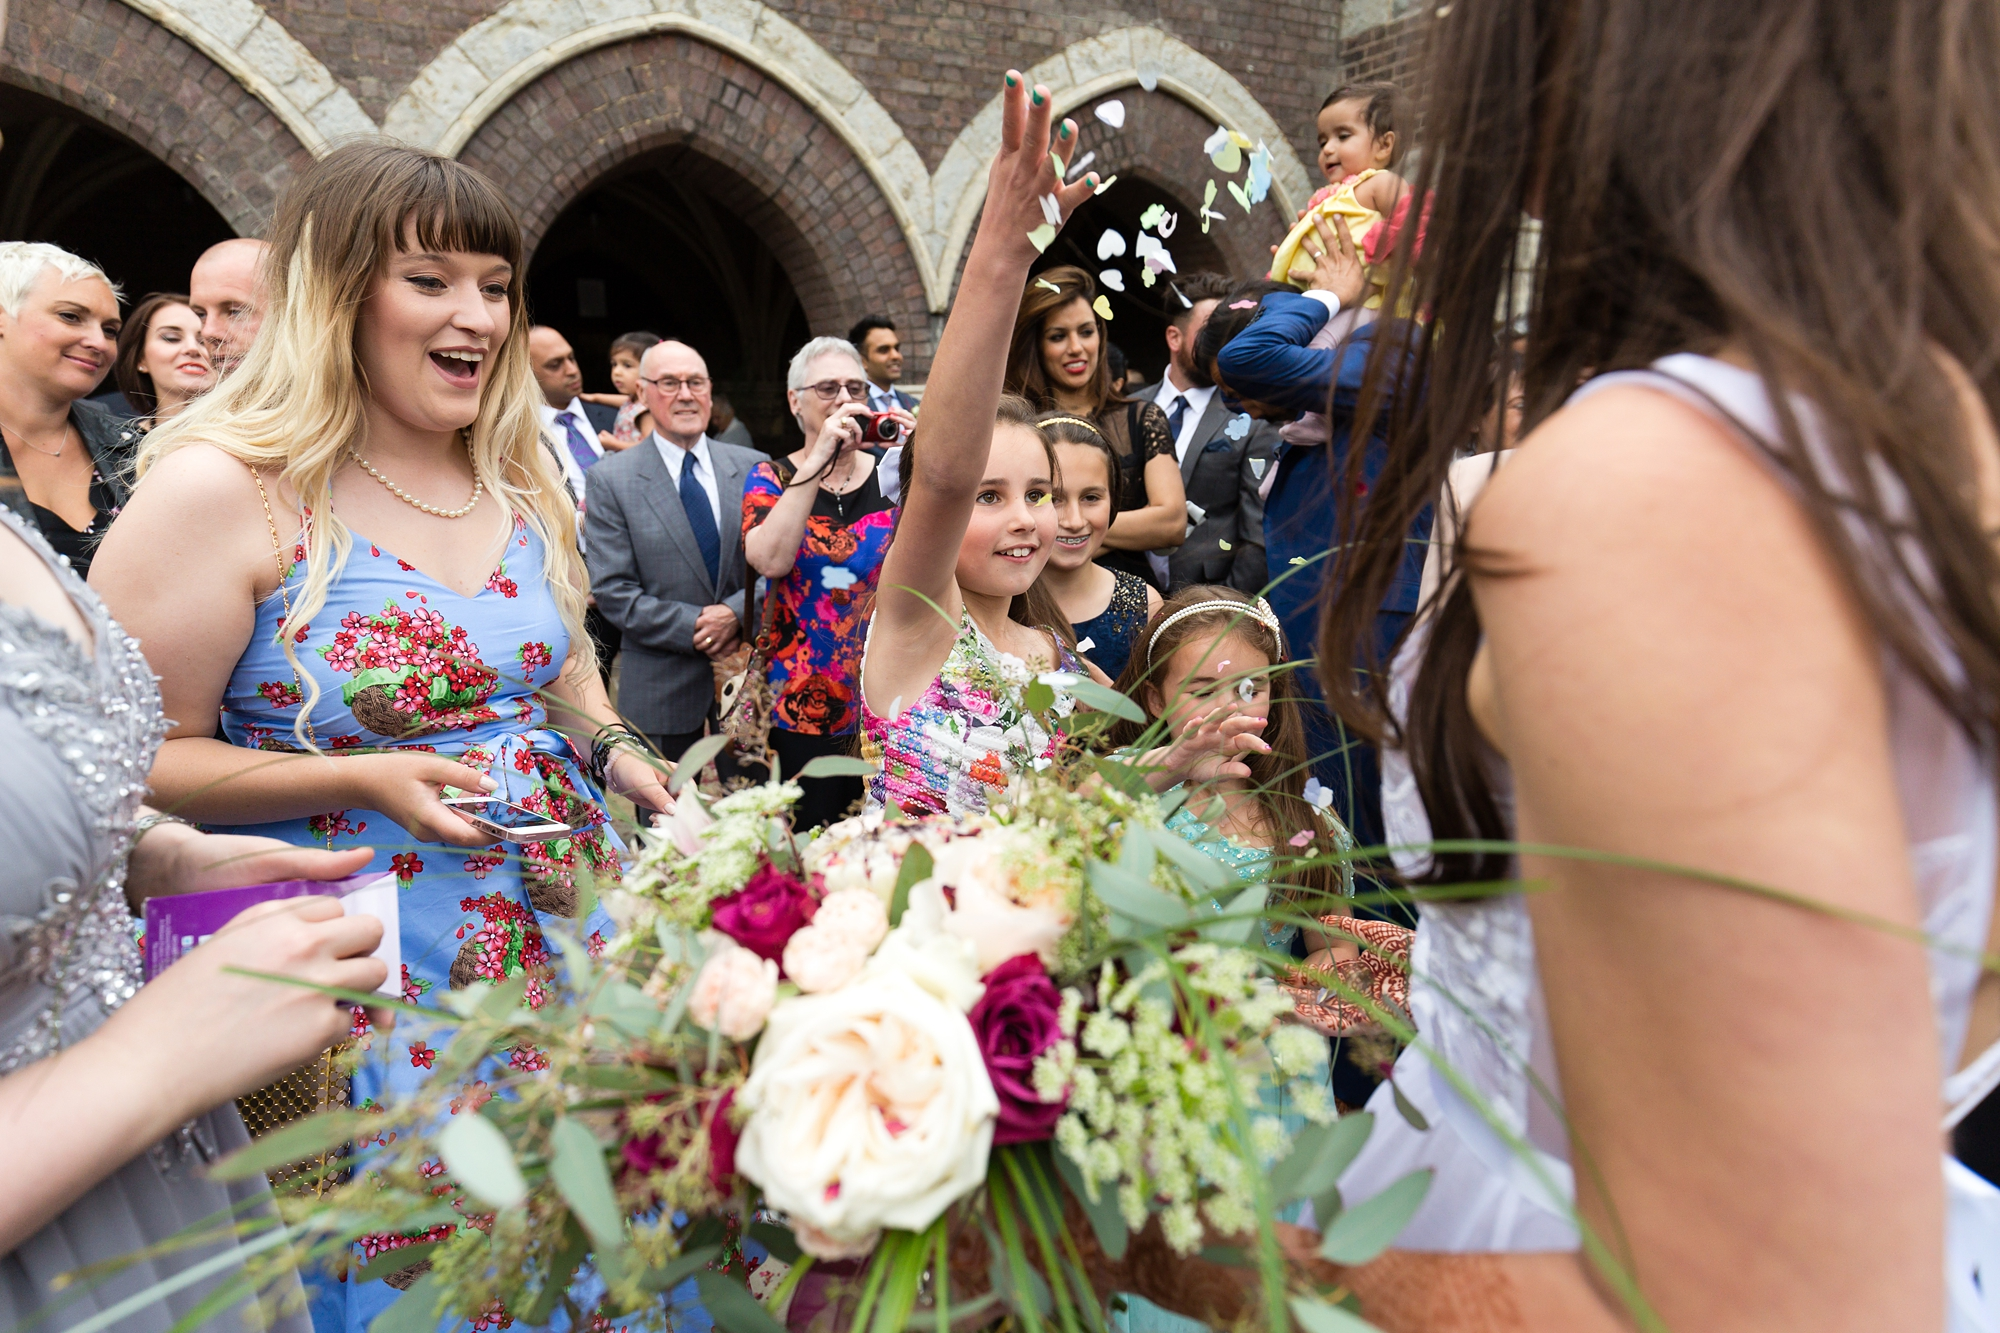 St. Stephens Hampstead Wedding guest throws extra confetti